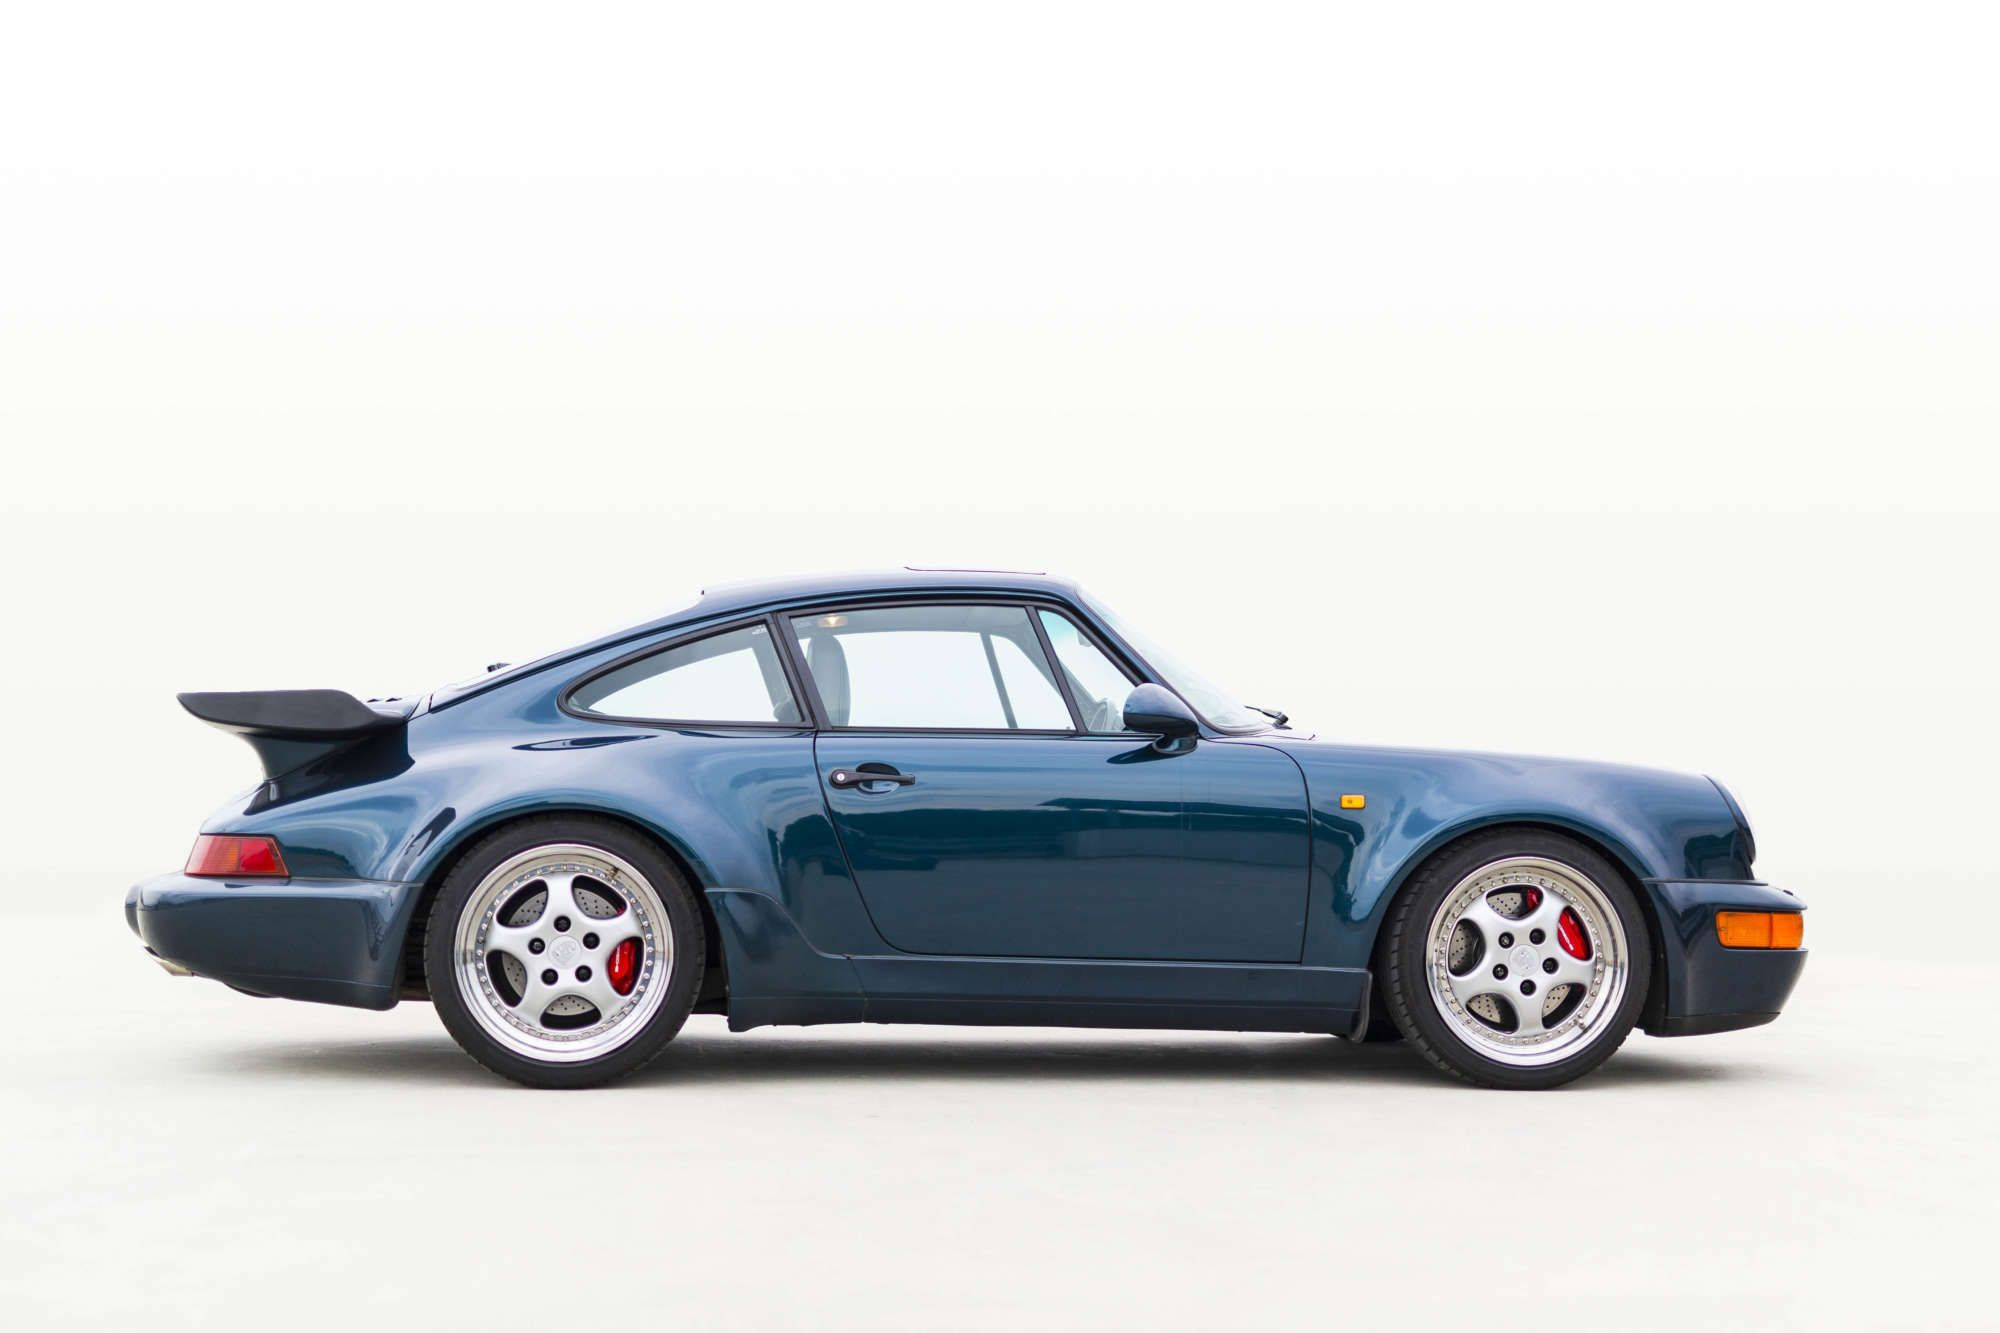 Porsche 964 Turbo 3,6 1993 – elferspot.com – Marketplace for Porsche Sports Cars